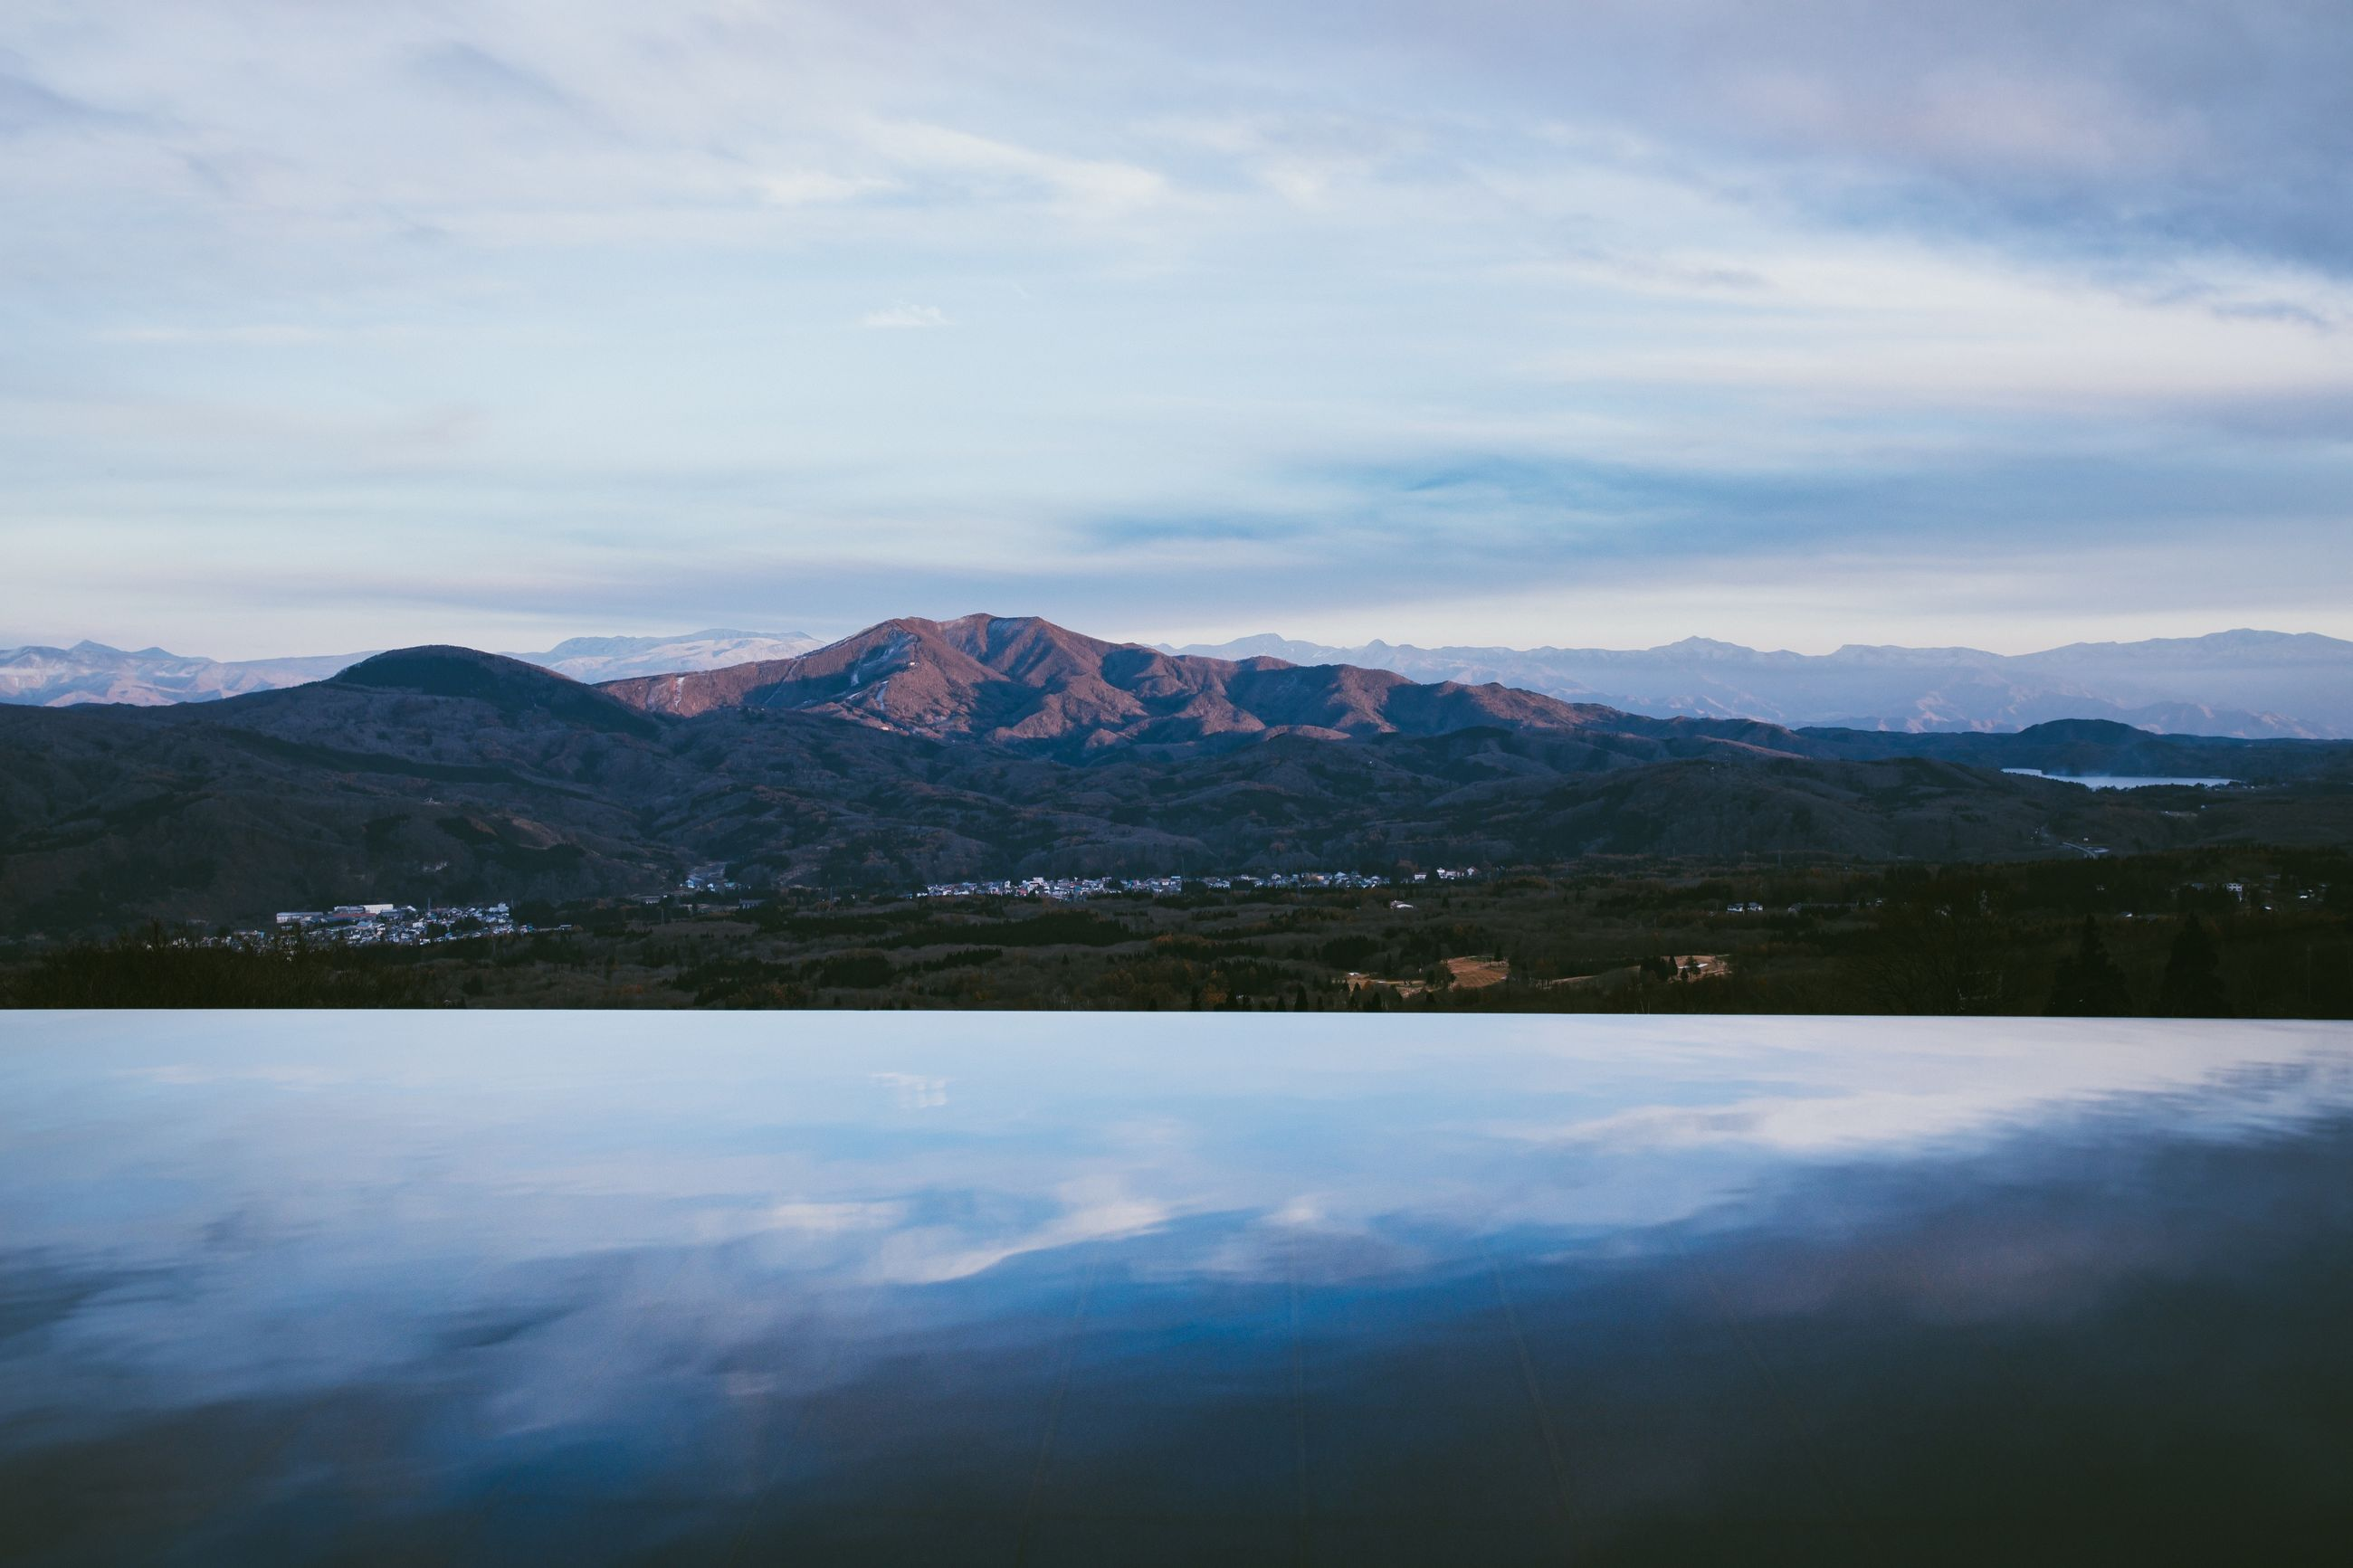 mountain, cloud - sky, beauty in nature, sky, scenics - nature, tranquil scene, tranquility, lake, non-urban scene, water, idyllic, mountain range, nature, reflection, no people, waterfront, environment, landscape, day, mountain peak